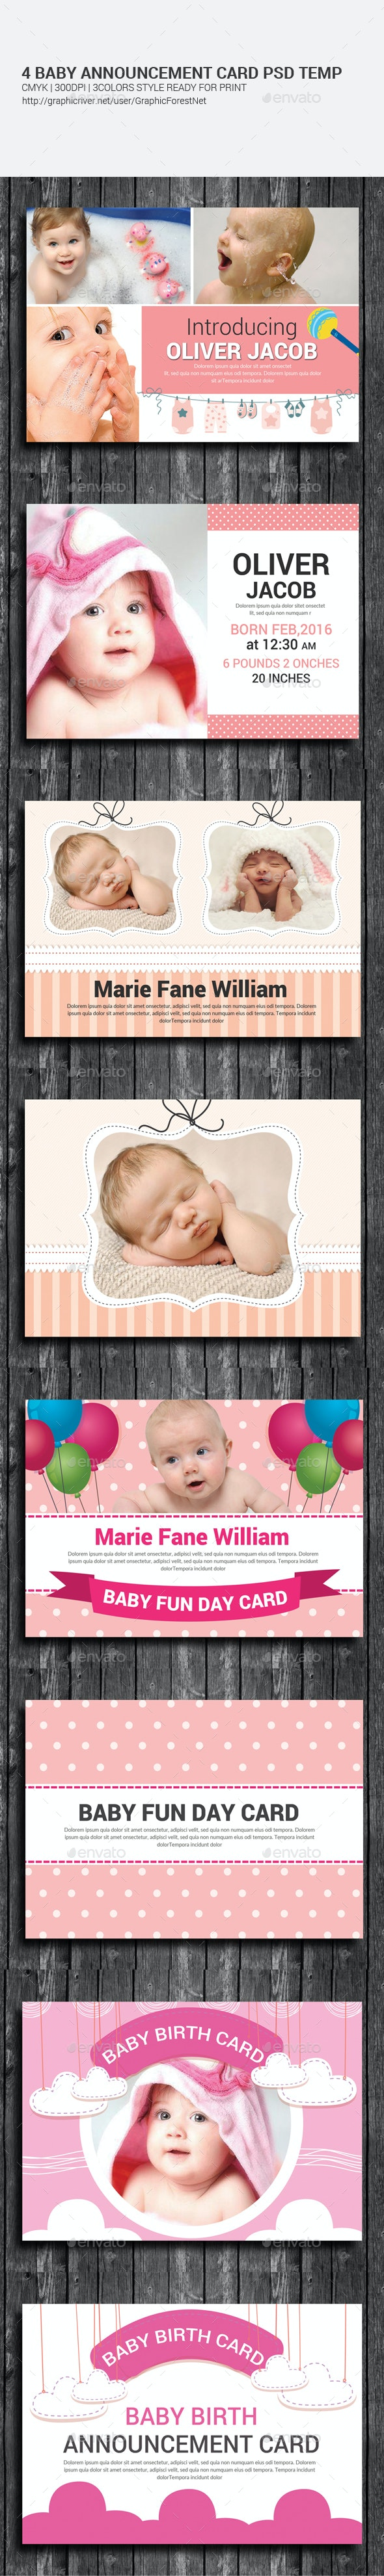 4 Baby Announcement and Birthday Cards Invites - Cards & Invites Print Templates